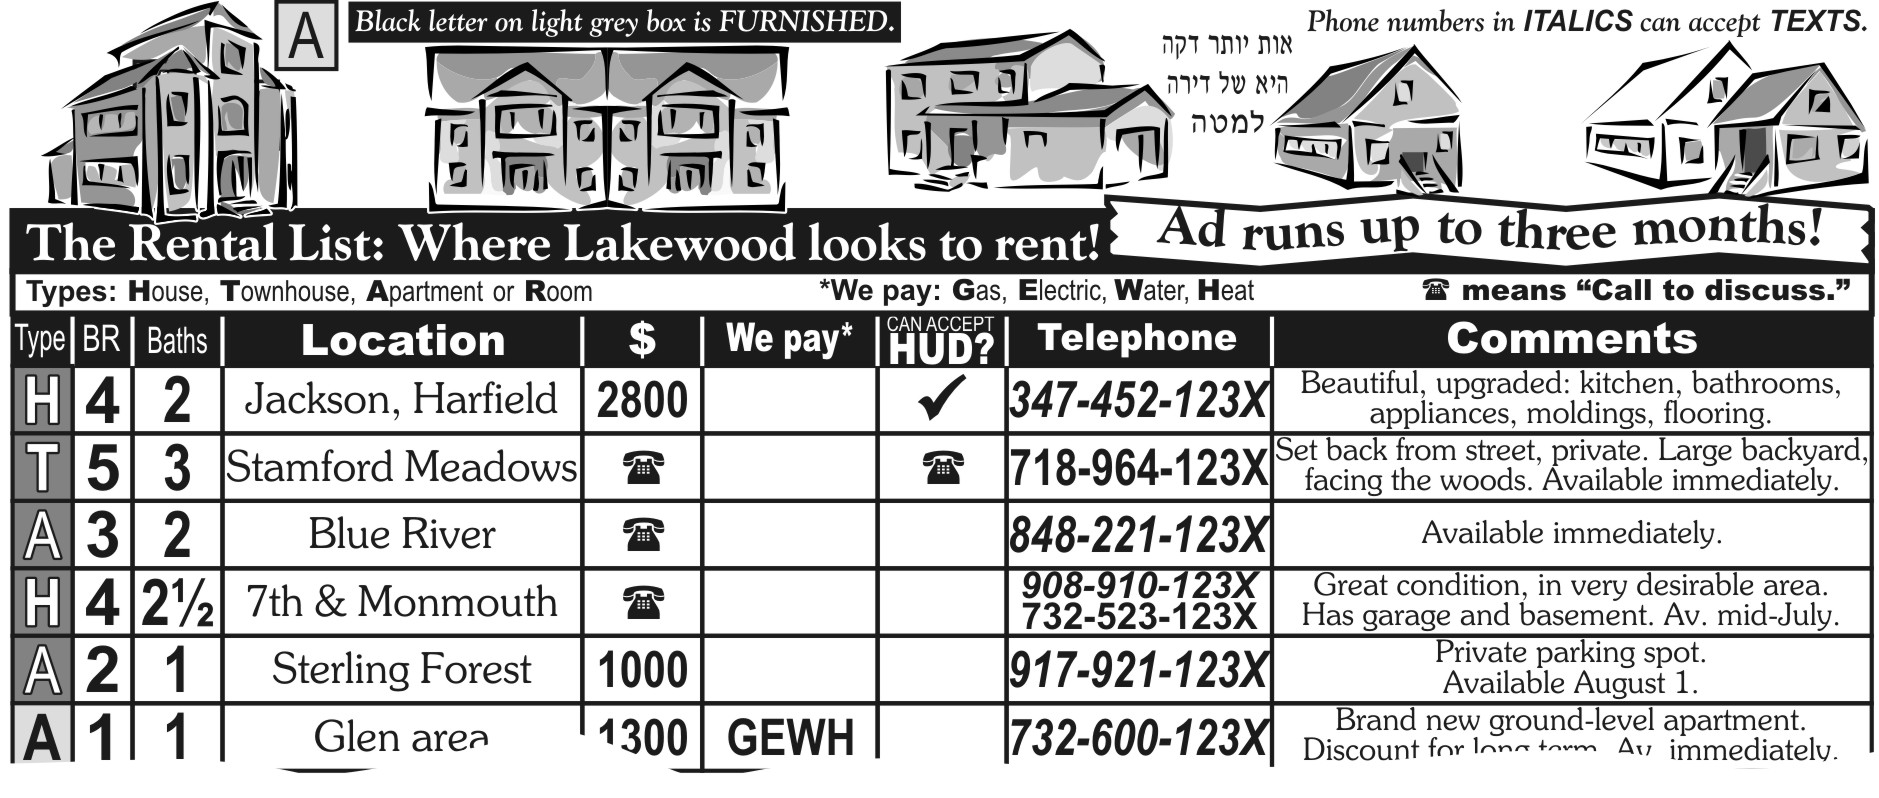 sample Rental List